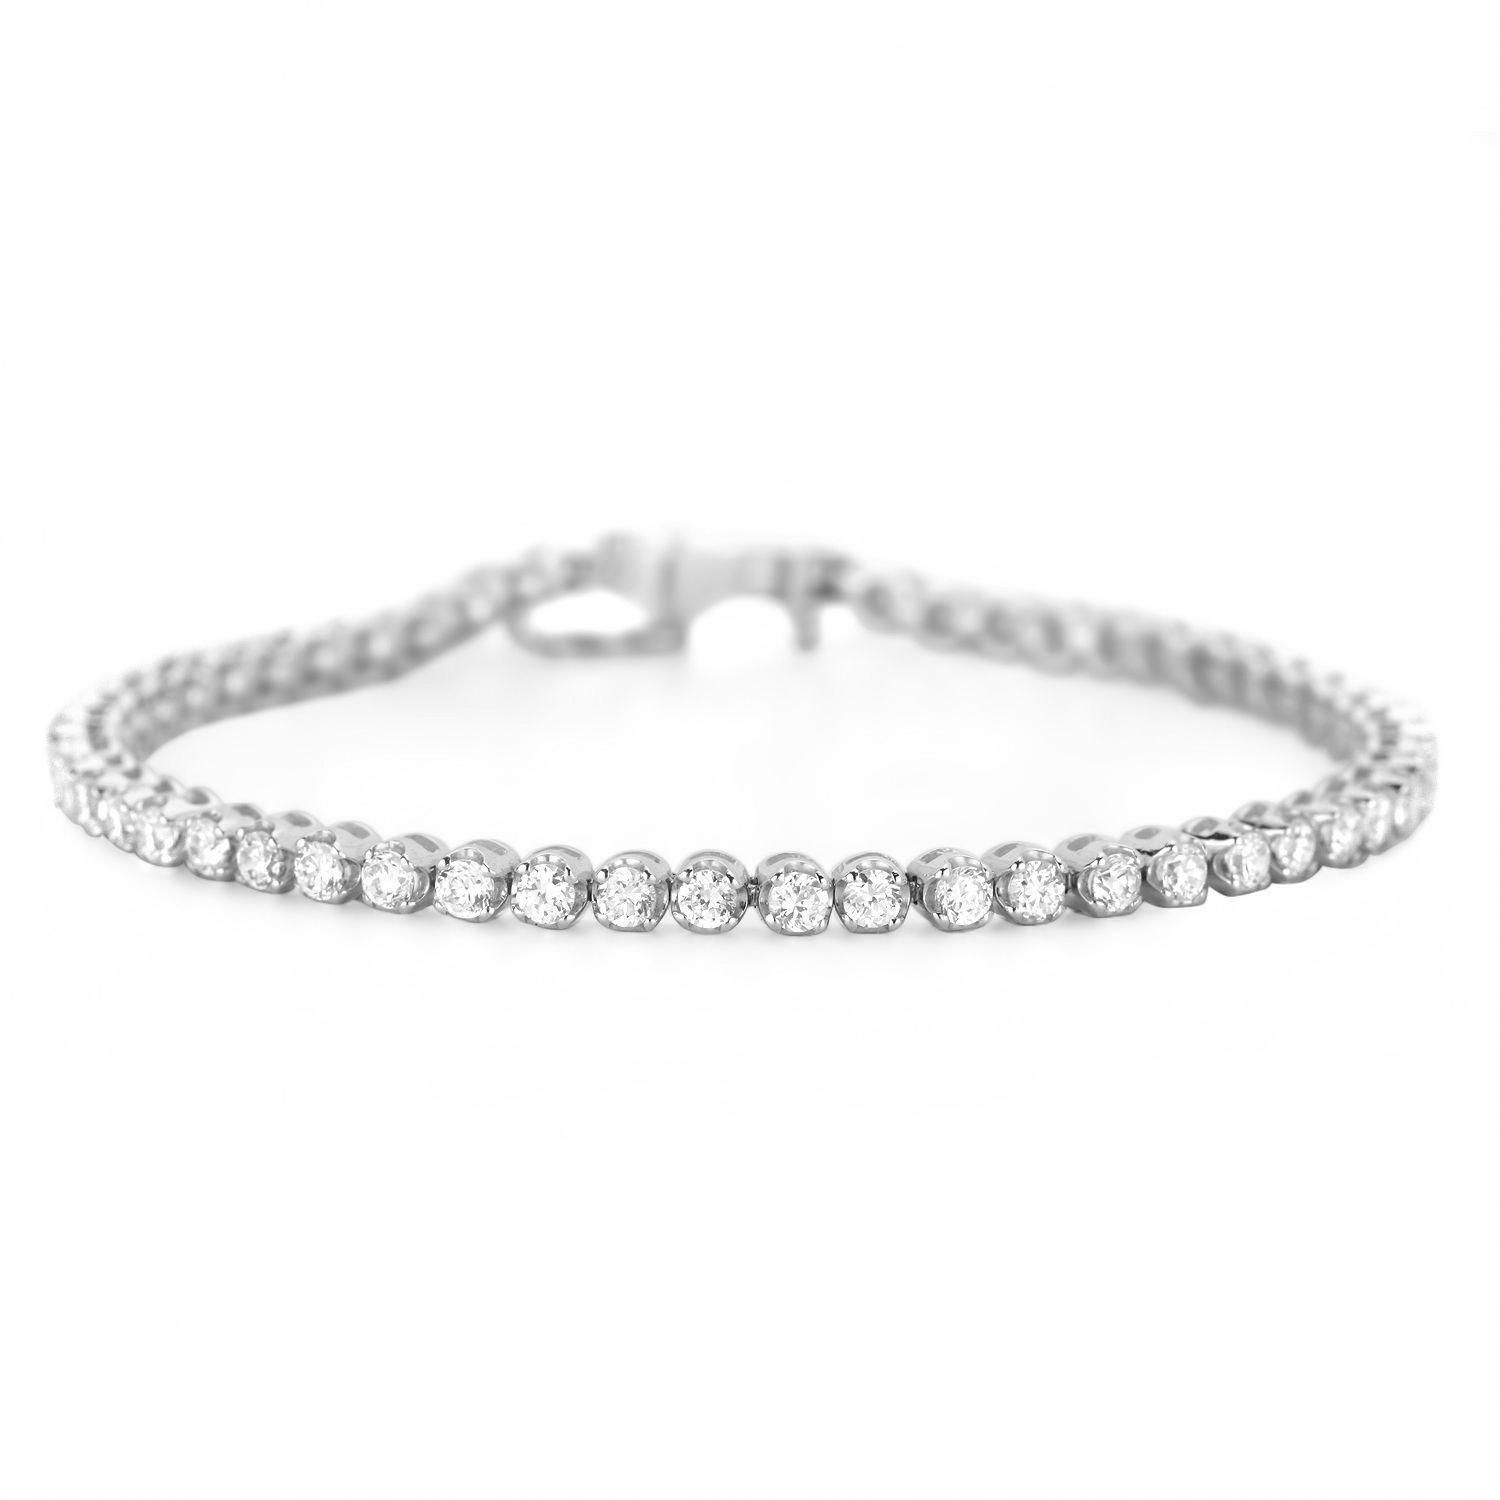 Diamond Tennis Bracelet Simple And Elegant Diamondtennisbracelet Tennisbracelets Silver Diamond Bracelet Mens Bracelet Silver Jewelry Bracelets Gold